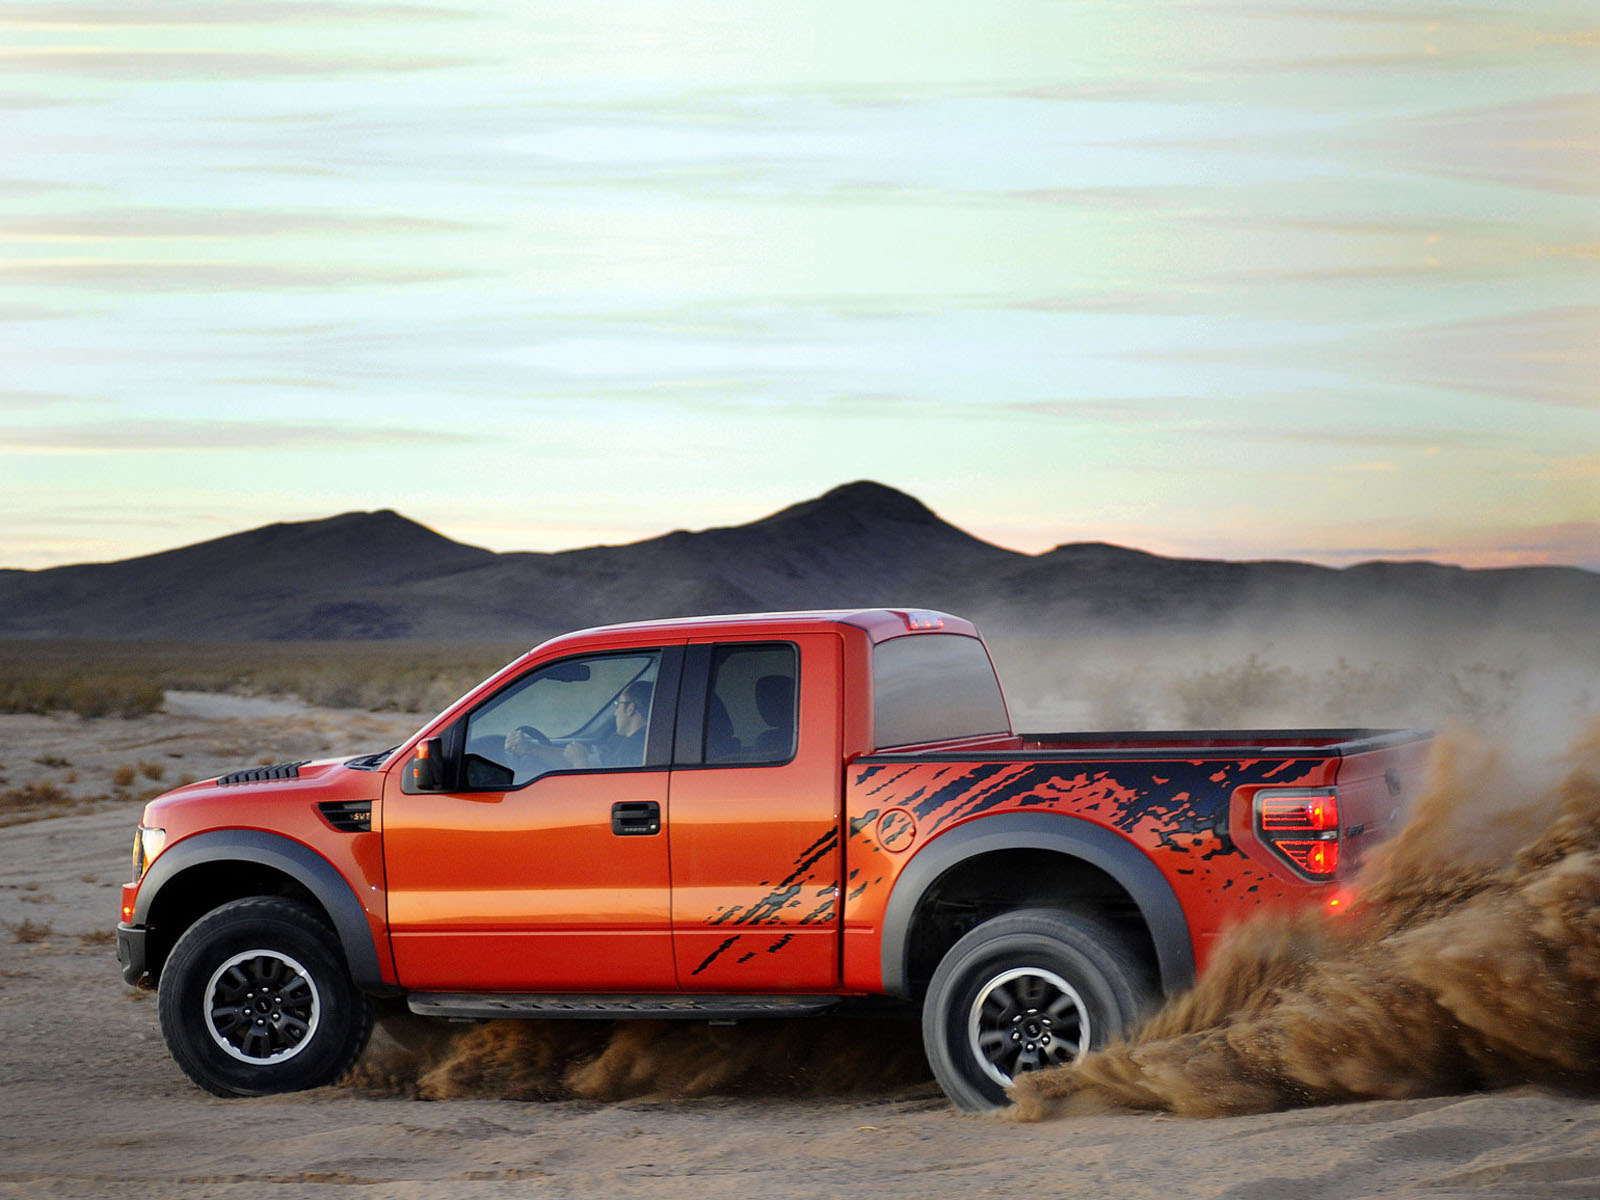 2010 Ford Raptor Svt 4993 Hd Wallpapers in Cars   Imagescicom 1600x1200